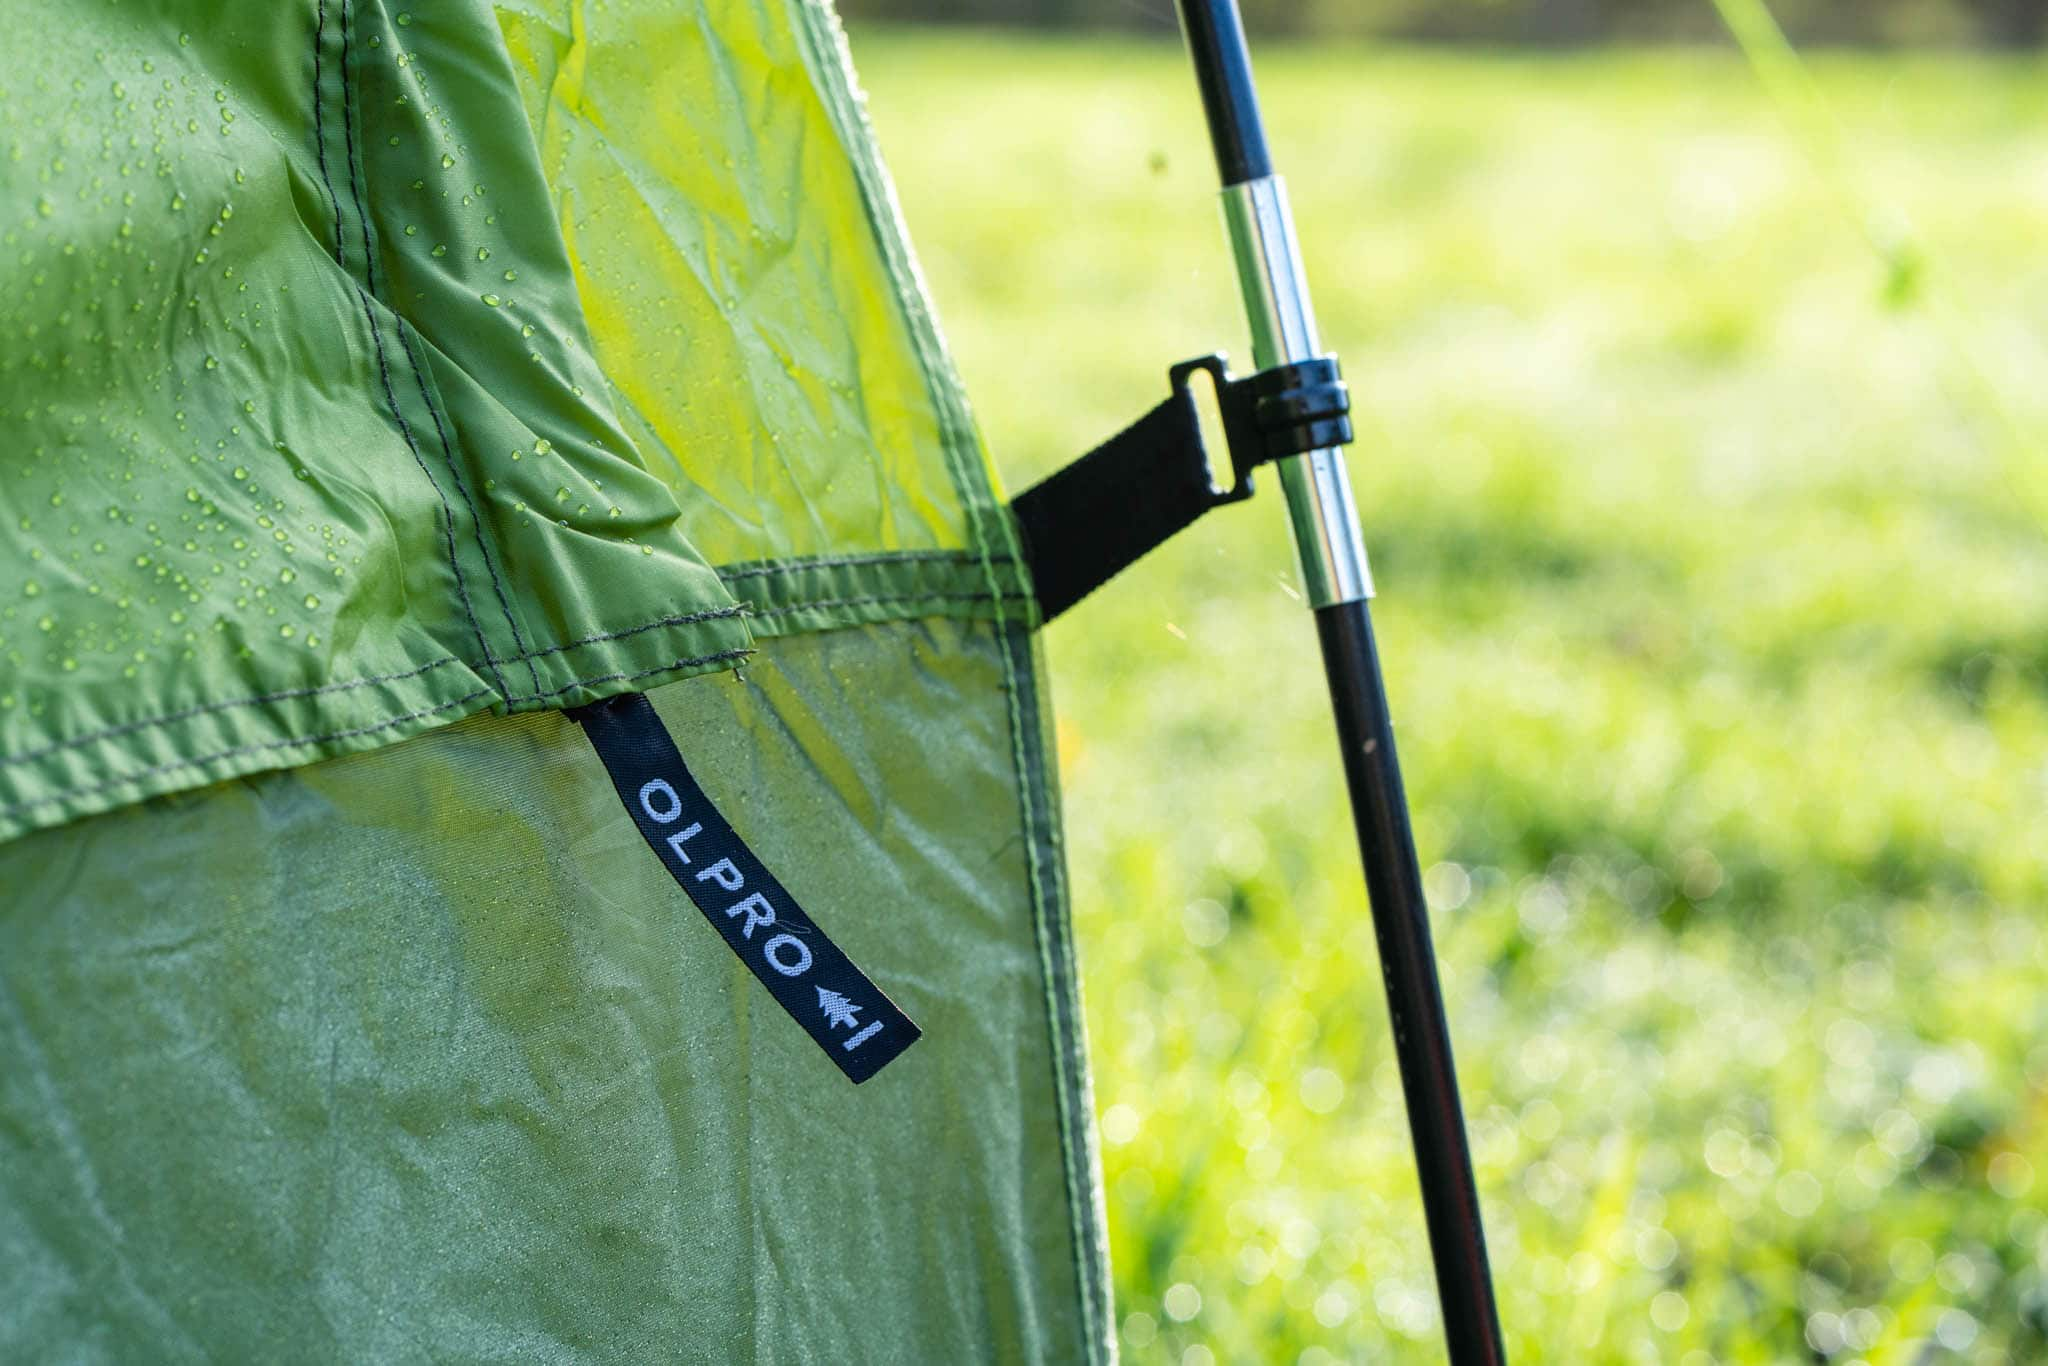 Olpro green tent